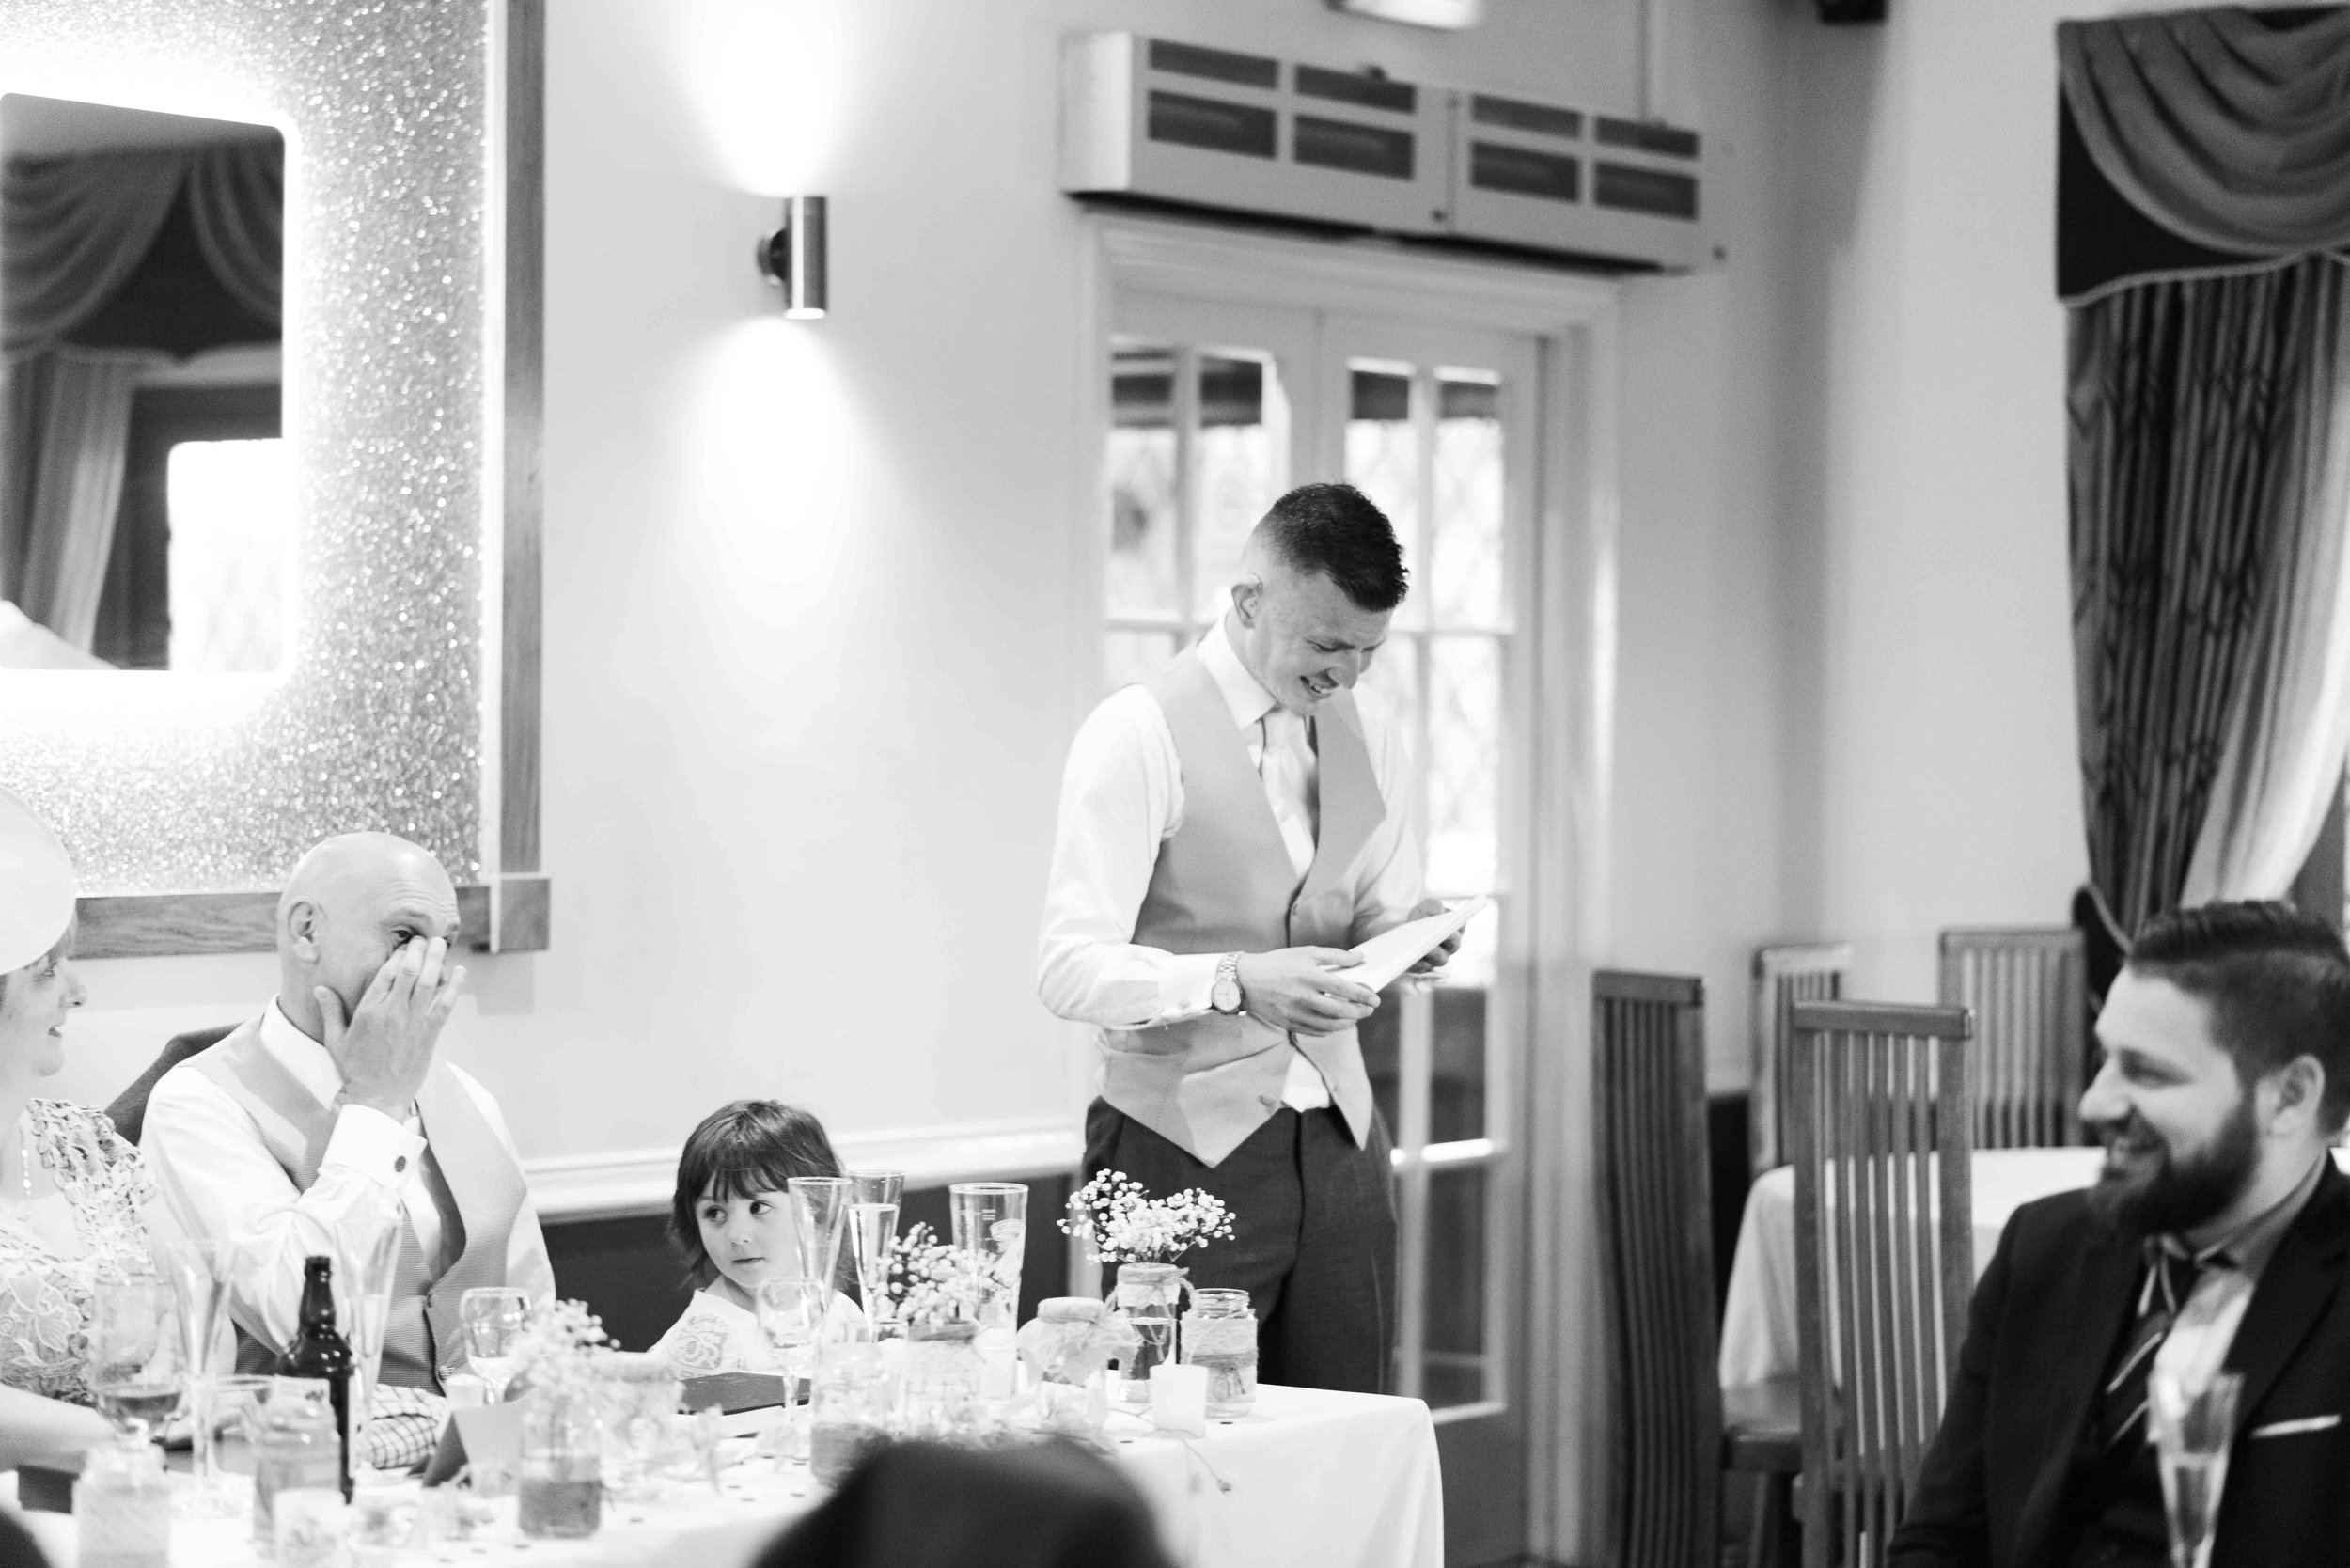 LEA-COOPER-PHOTOGRAPHY-WEDDING-PHOTOGRAPHY-THOMAS-ROBINSON-BUILDING-STOURBRIDGE-YE-OLDE-PUNCHBOWL-INN-BRIDGNORTH-WOLVERHAMPTON-WILLENHALL-UK-WEDDING-PHOTOGRAPHER-13.JPG